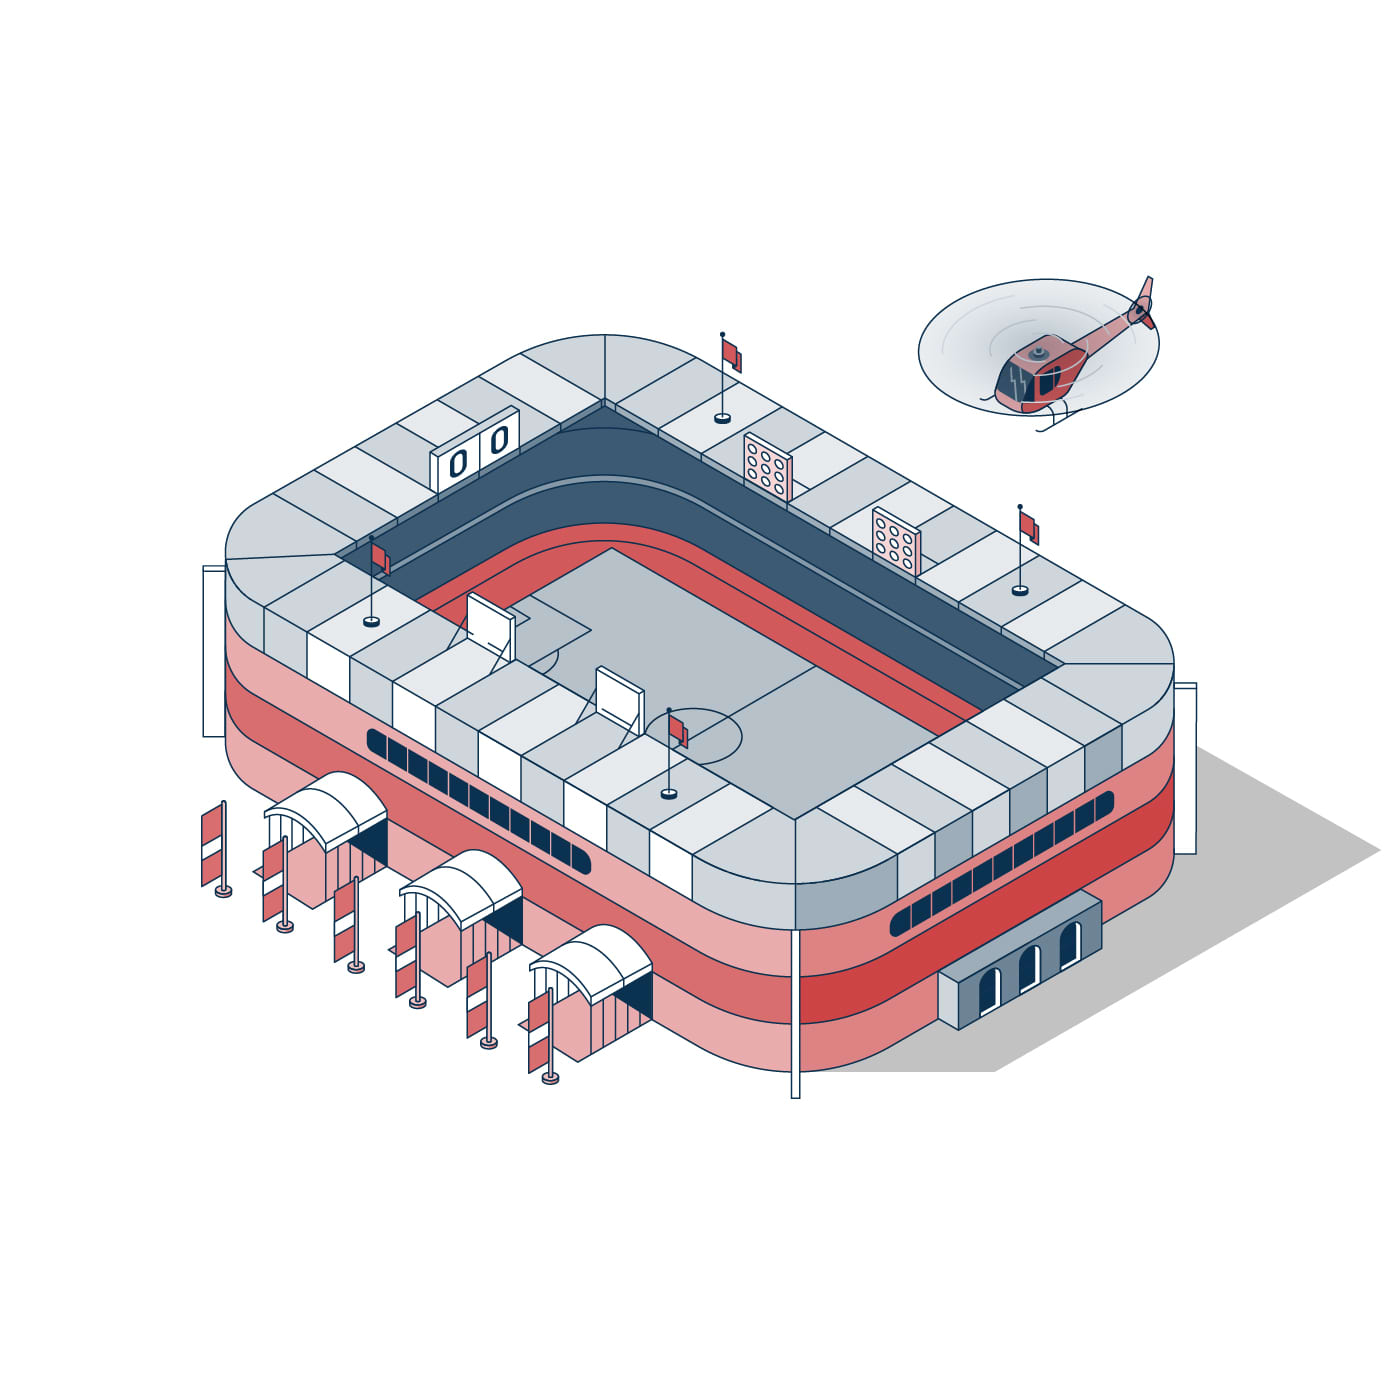 Isometric Illustrations for Indoor Mapping